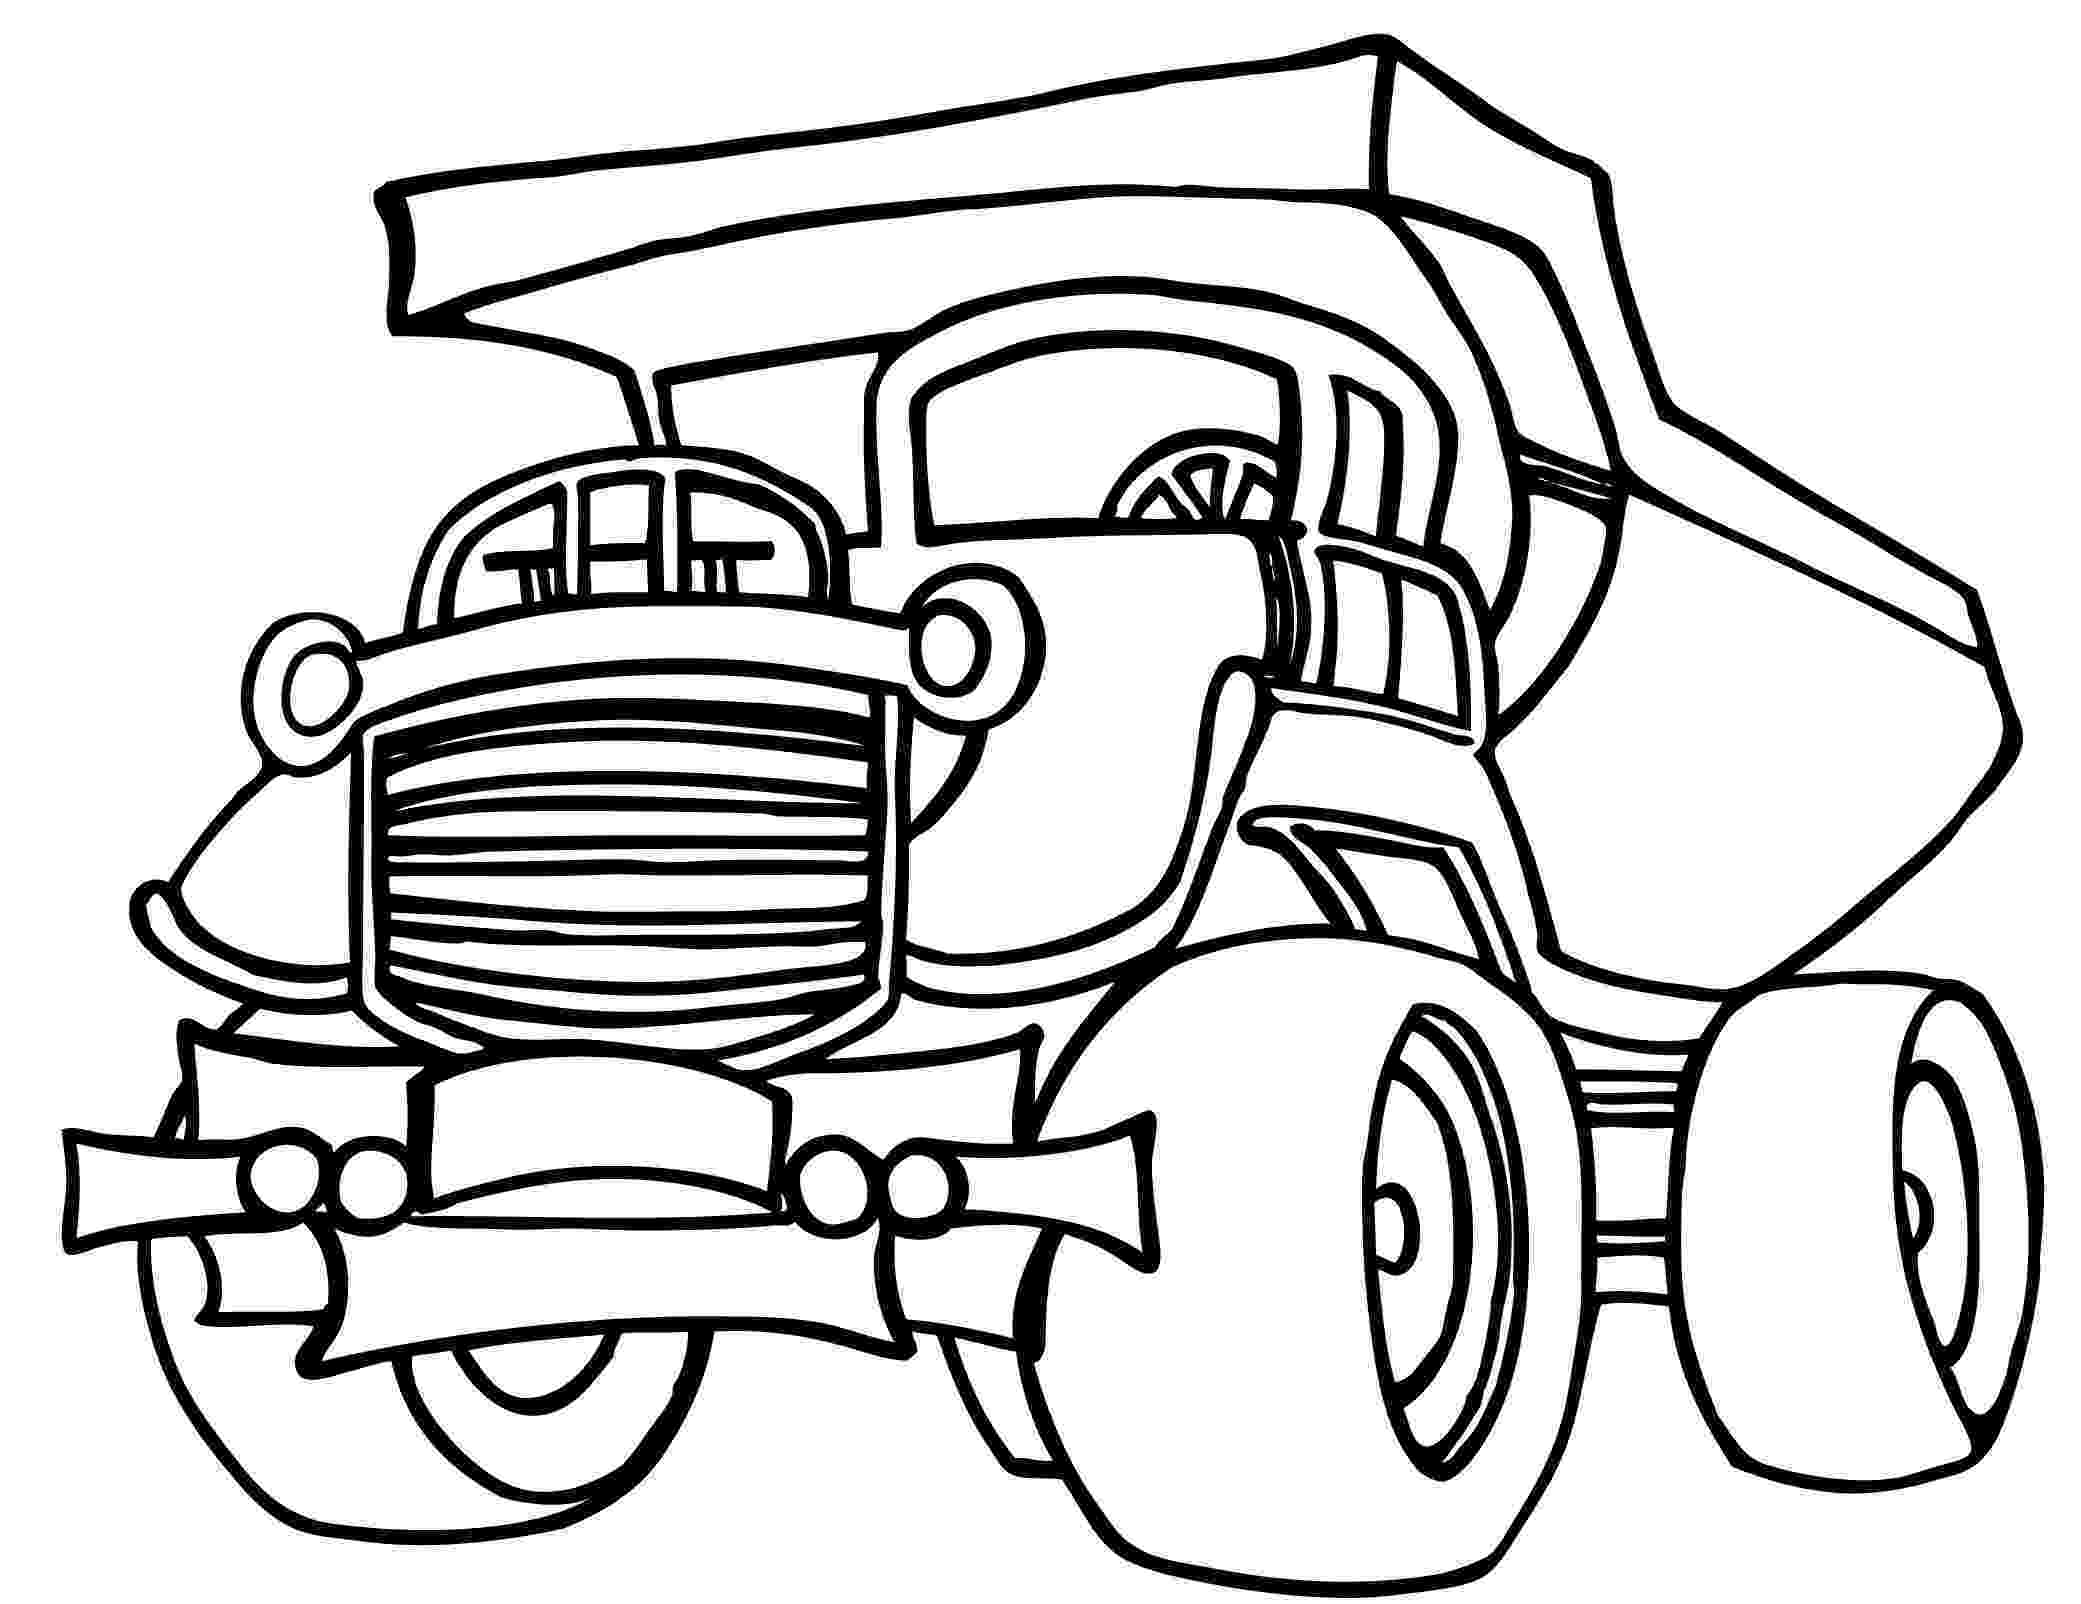 printable coloring pages trucks dump truck coloring pages to download and print for free printable pages coloring trucks